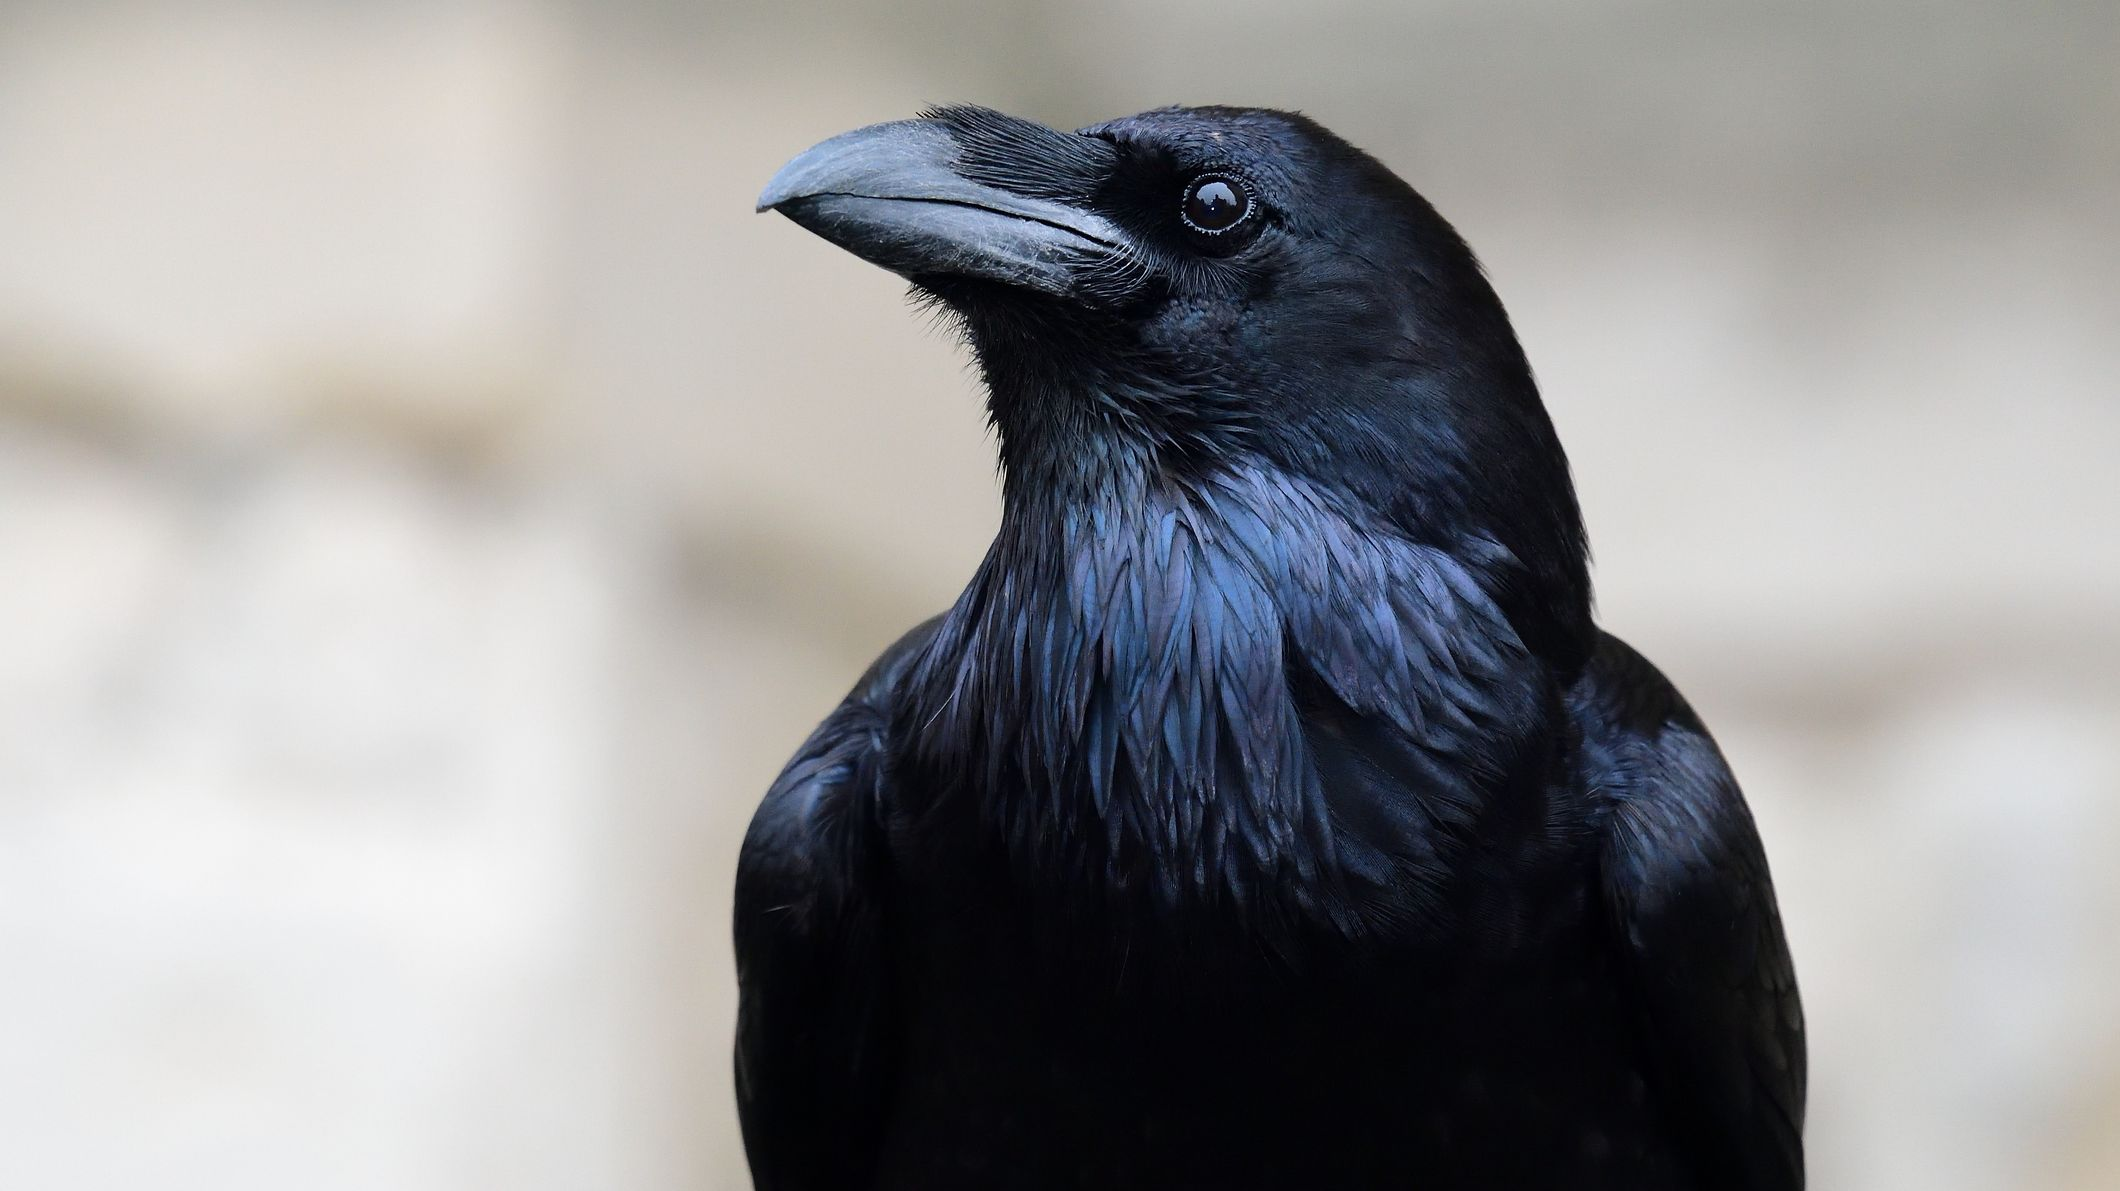 Crow vs. Raven: What's the Difference?